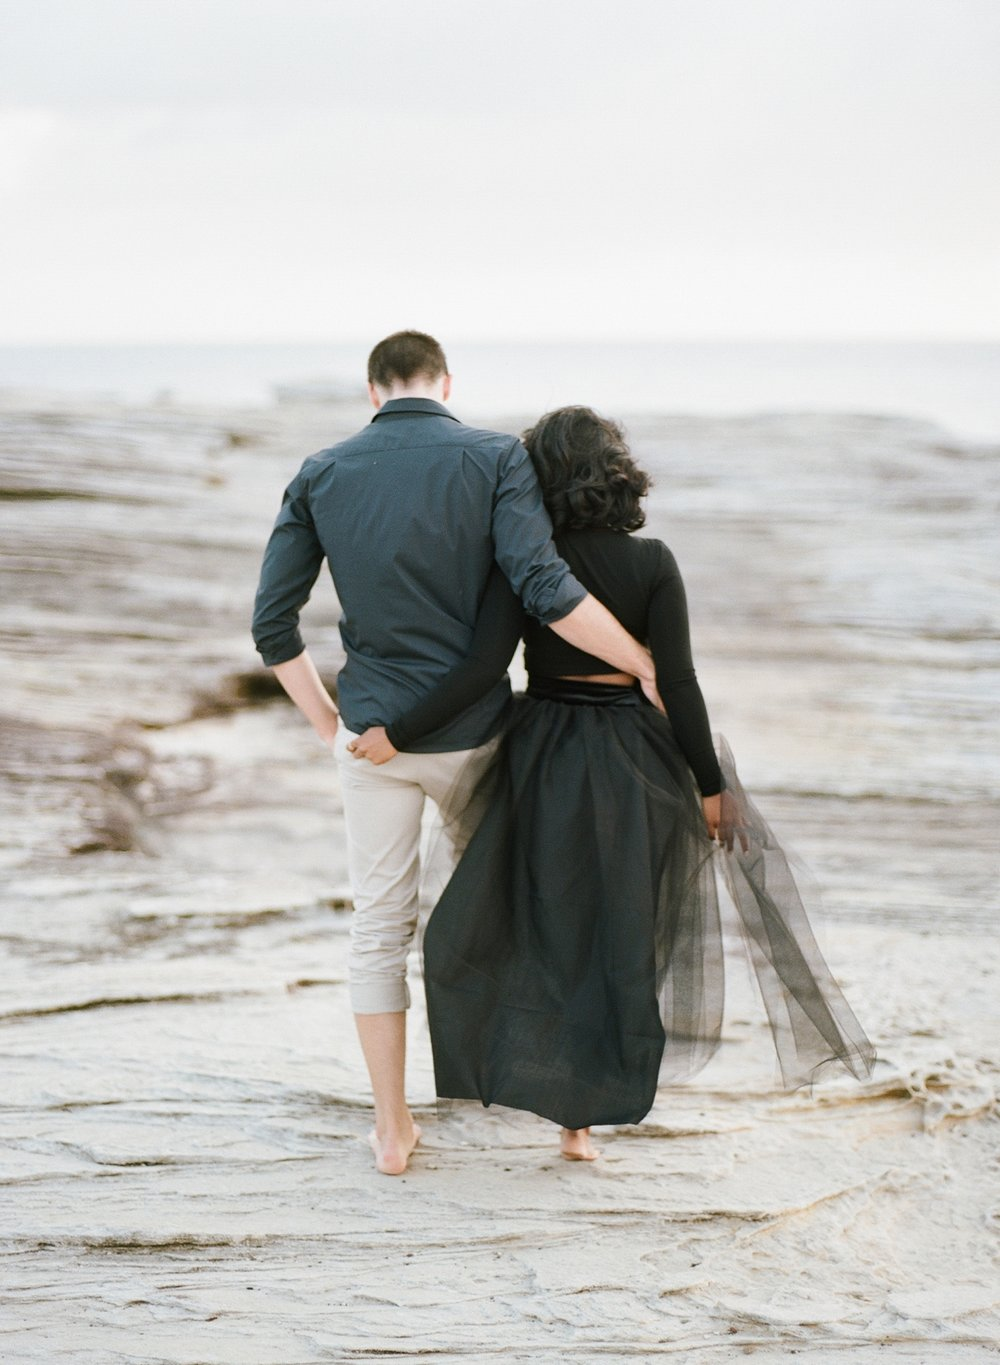 Coastal Sydney couples session by Mr Edwards Photography_0737_1147.jpg